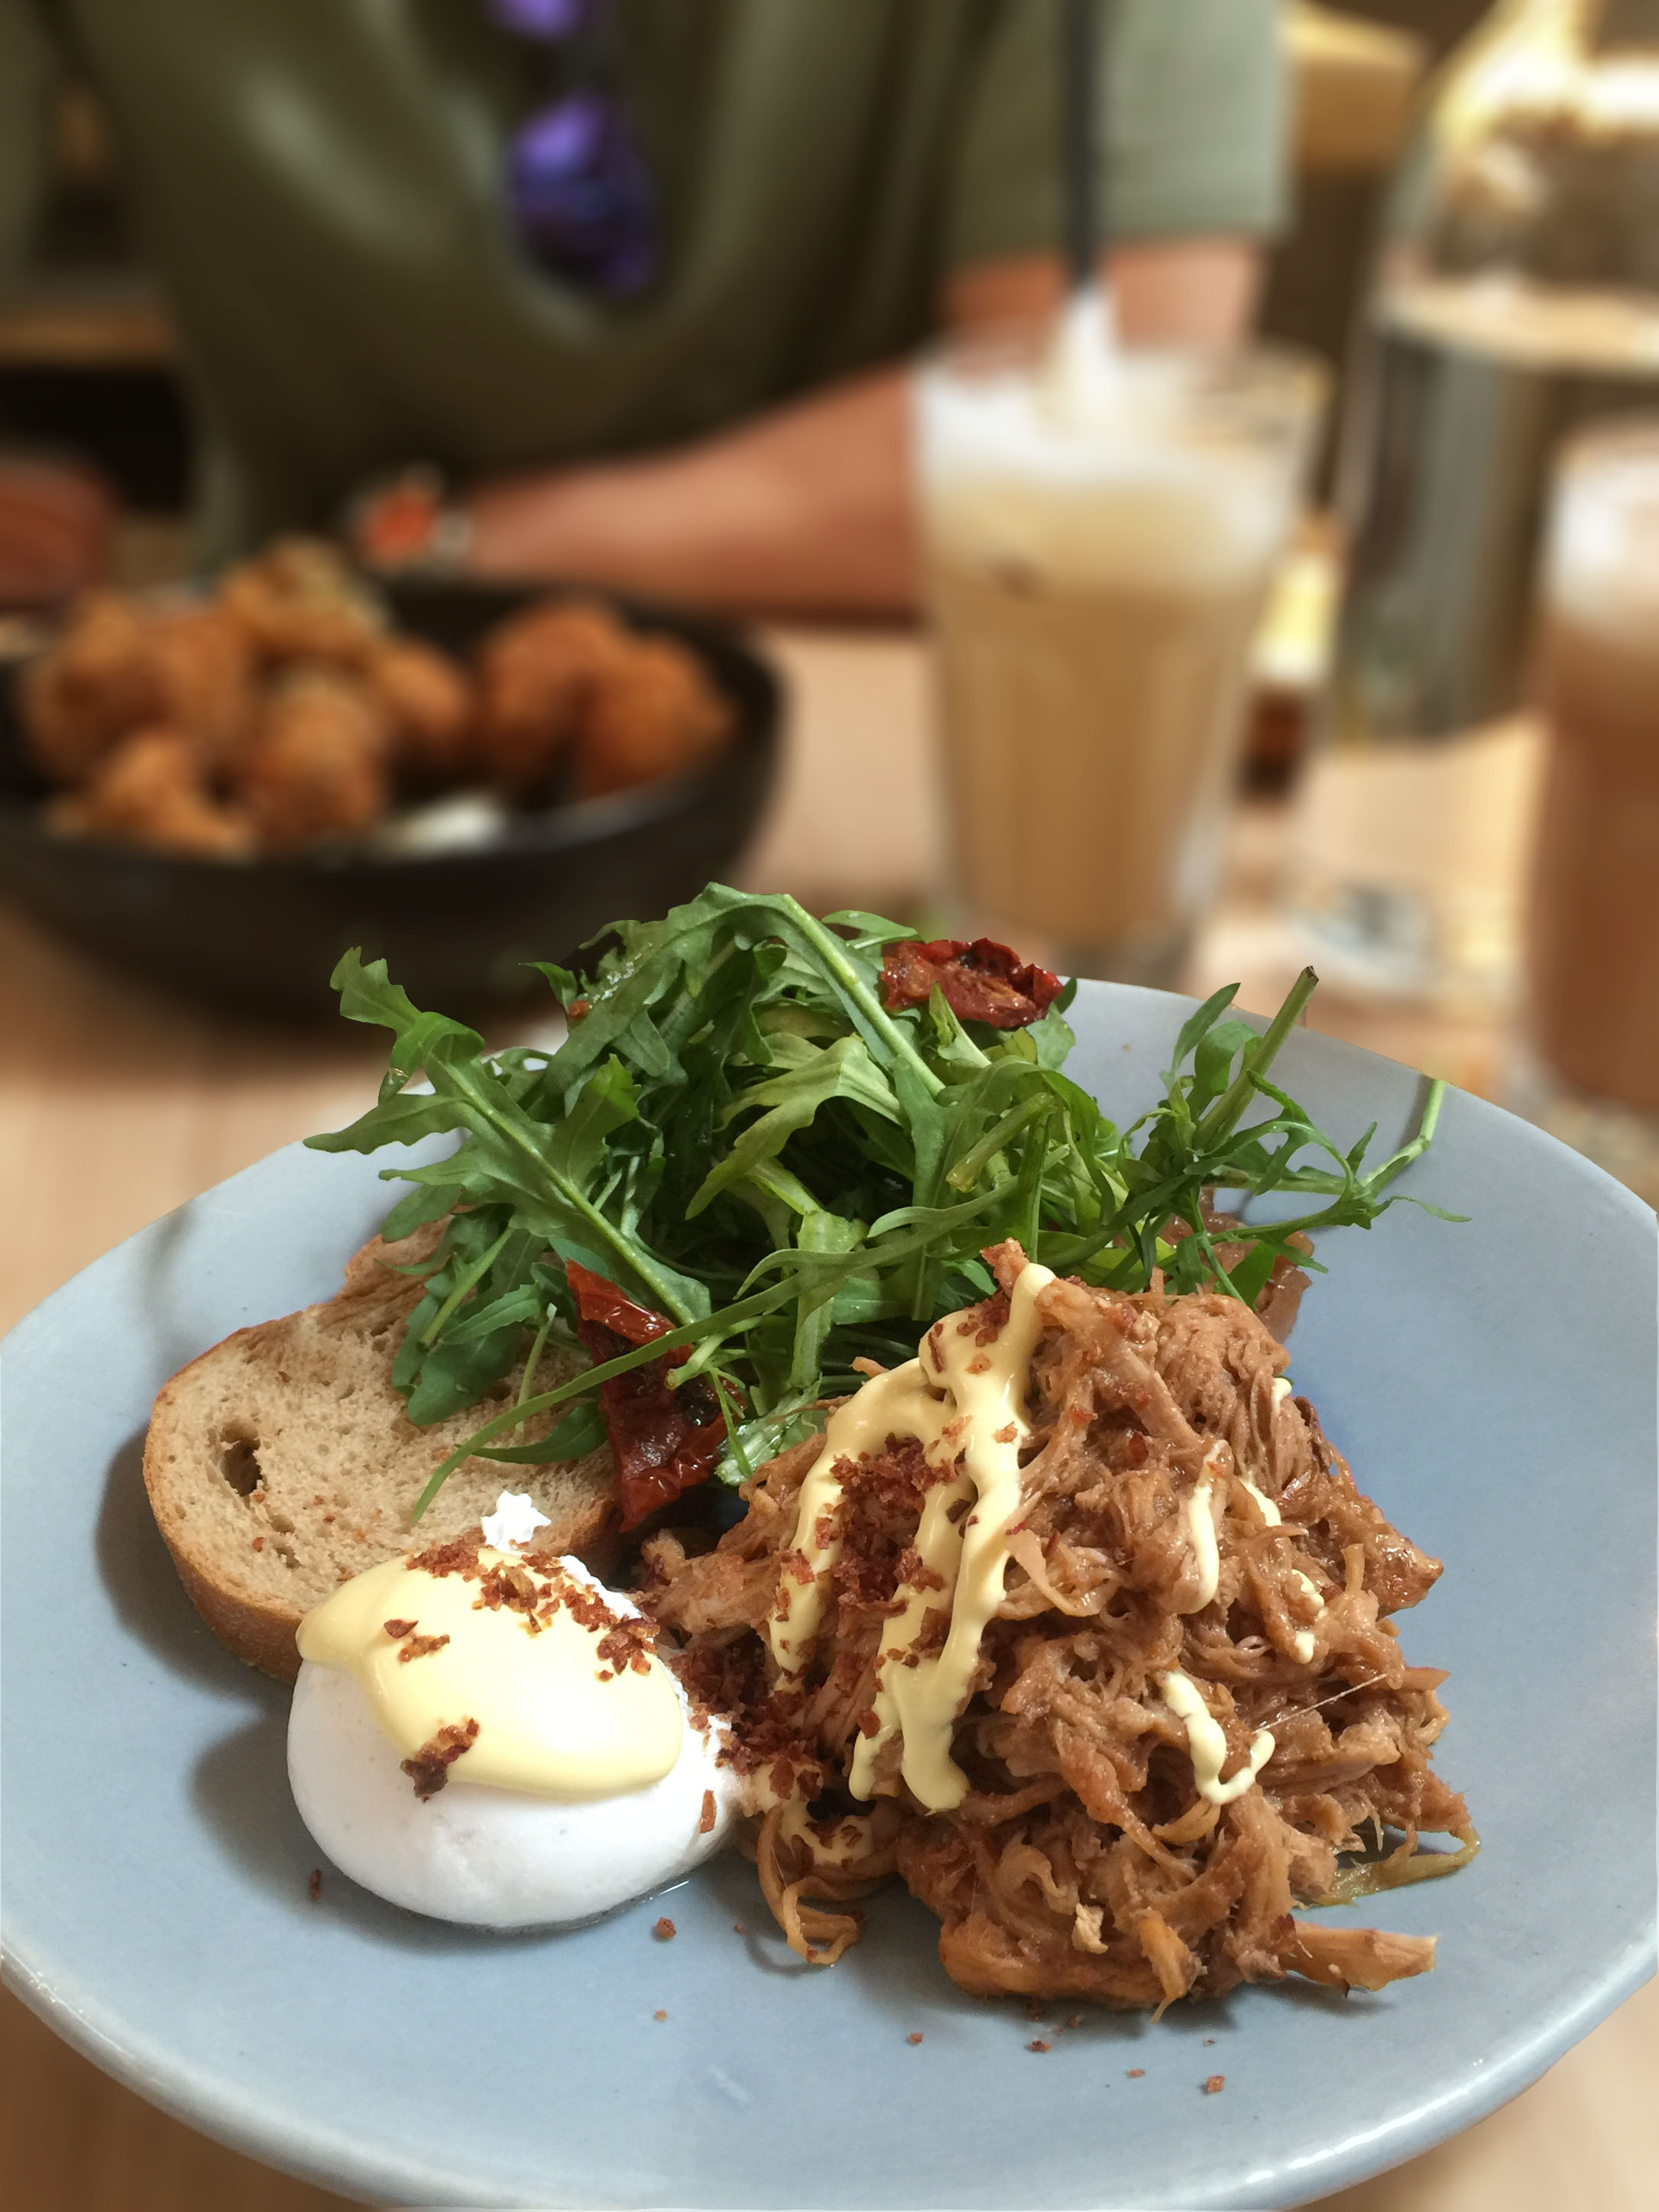 Pulled Pork on Sourdough  coupled with Poached Egg & Hollandaise Sauce with Purple Cabbage & Arugula